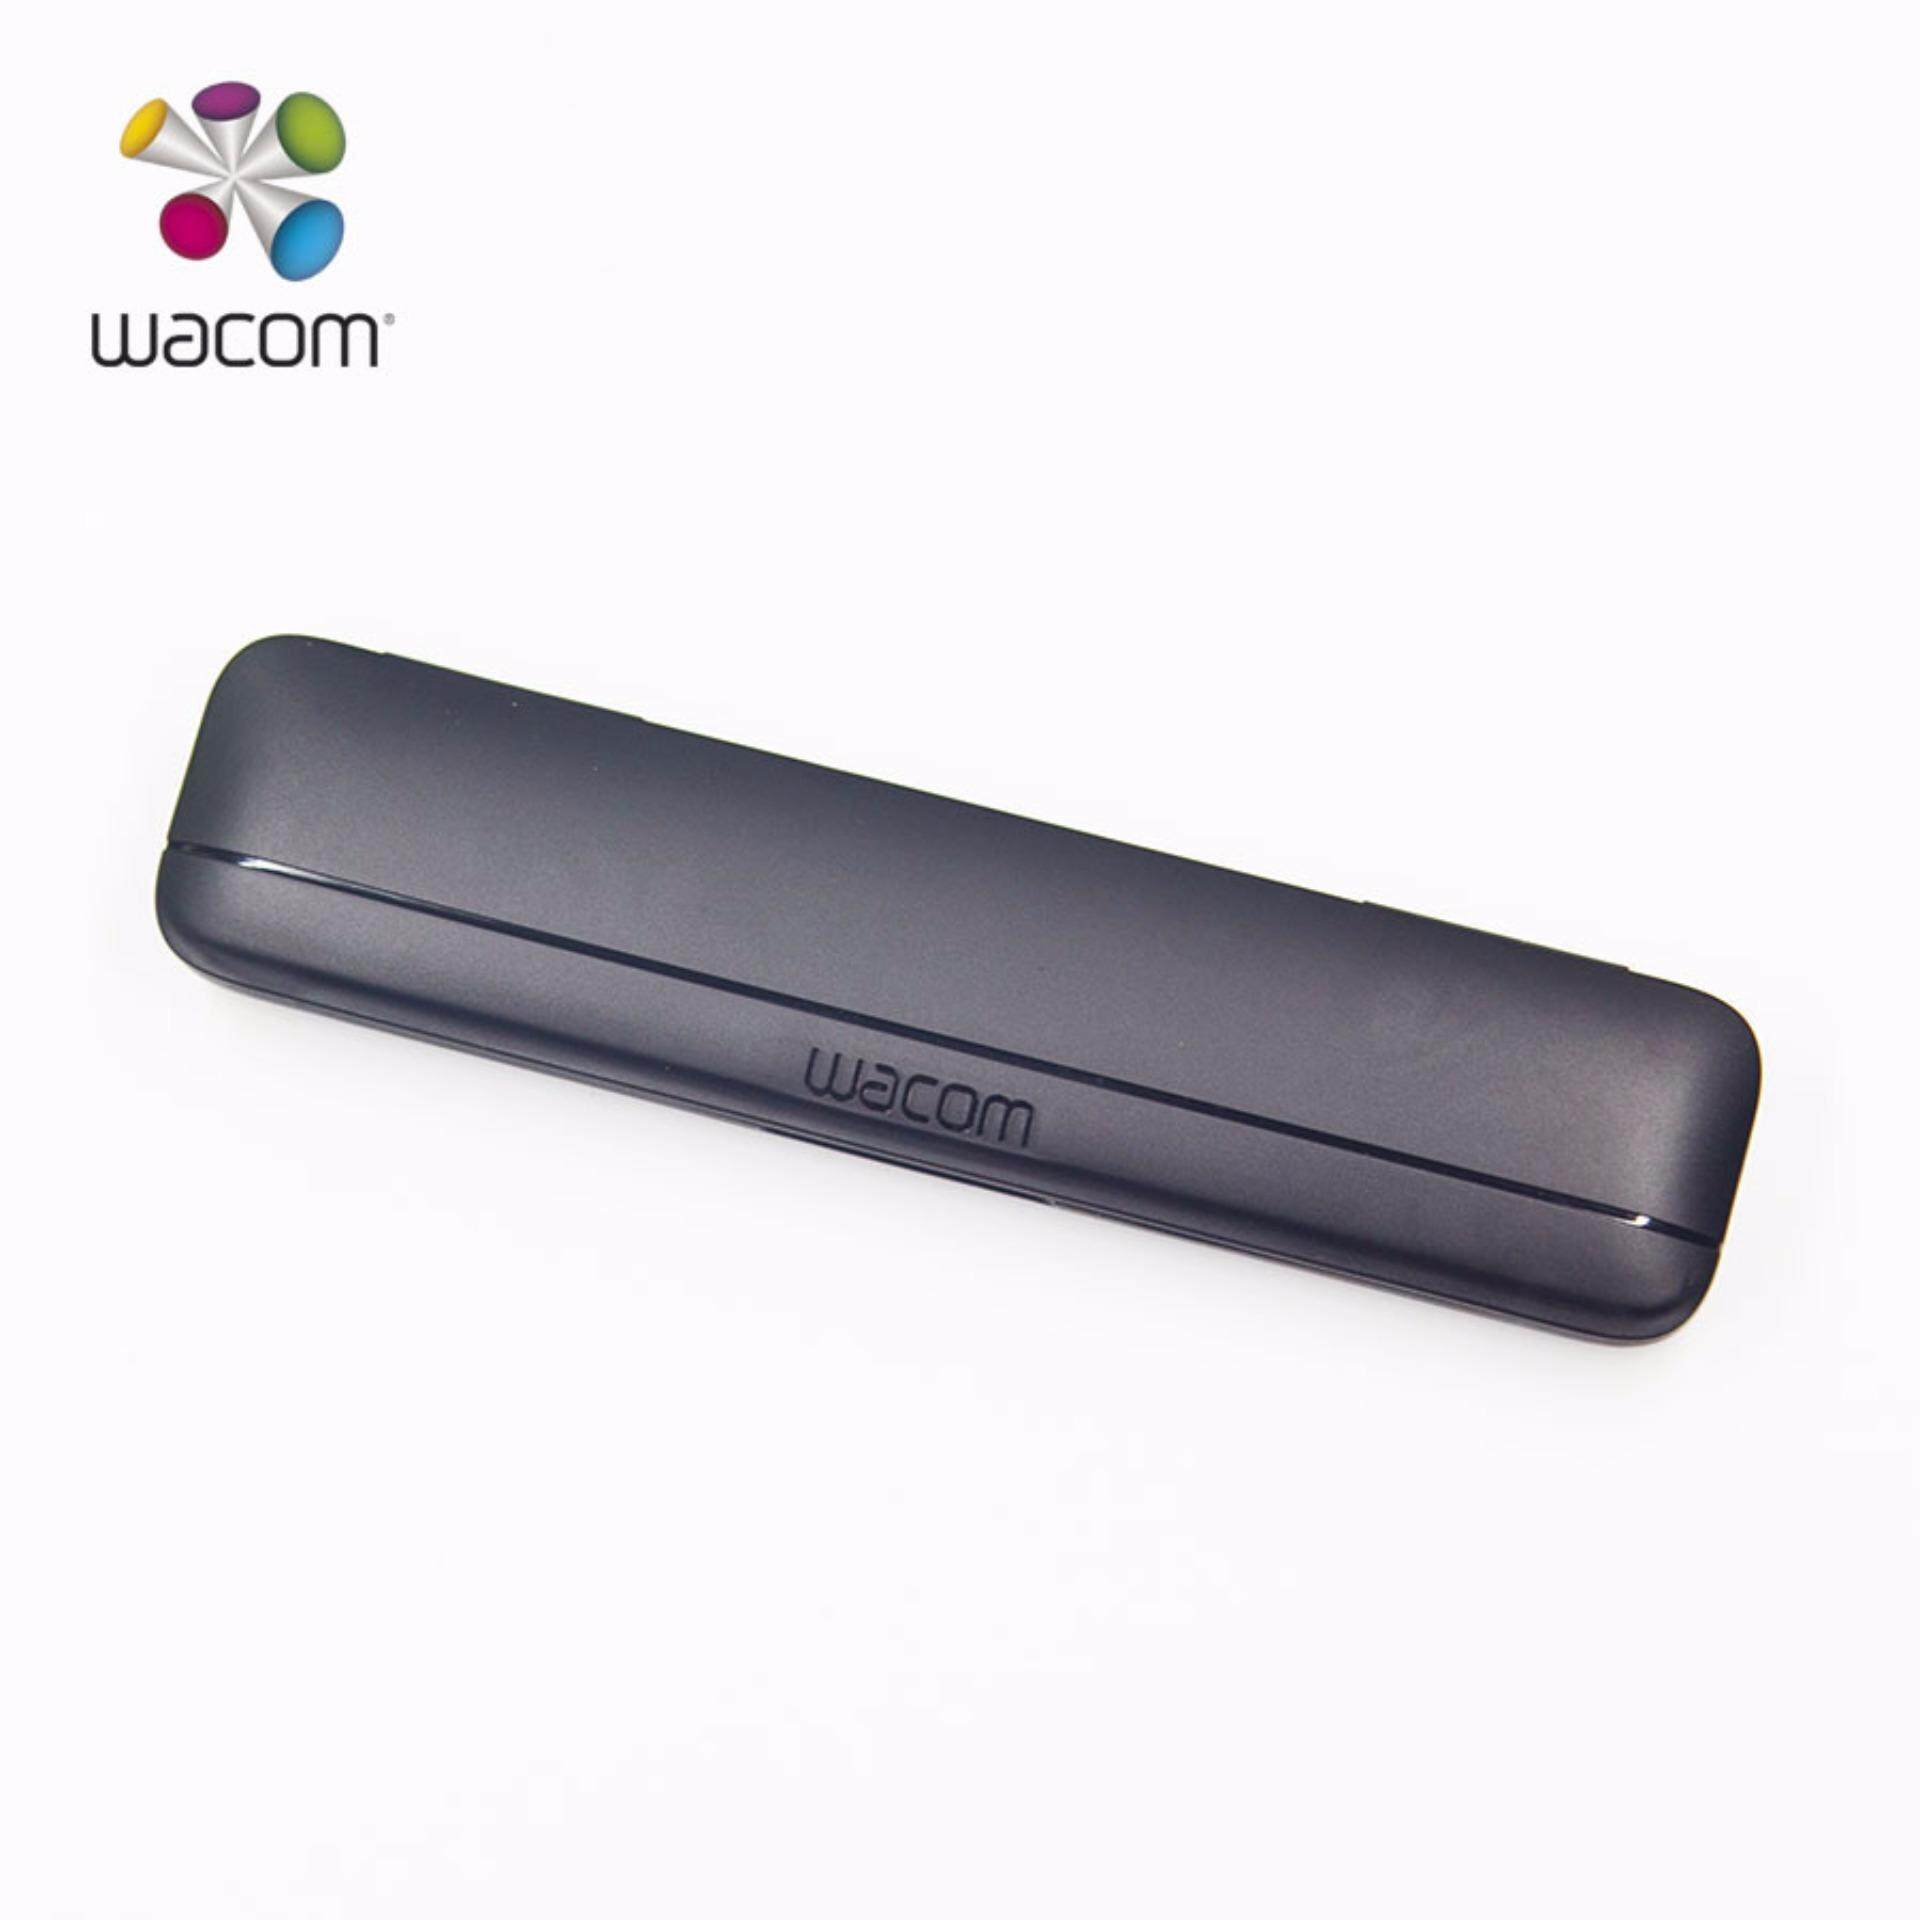 Sell Wacom Compact Intuos Cheapest Best Quality My Store Ctl 4100 K0 Cx Myr 39